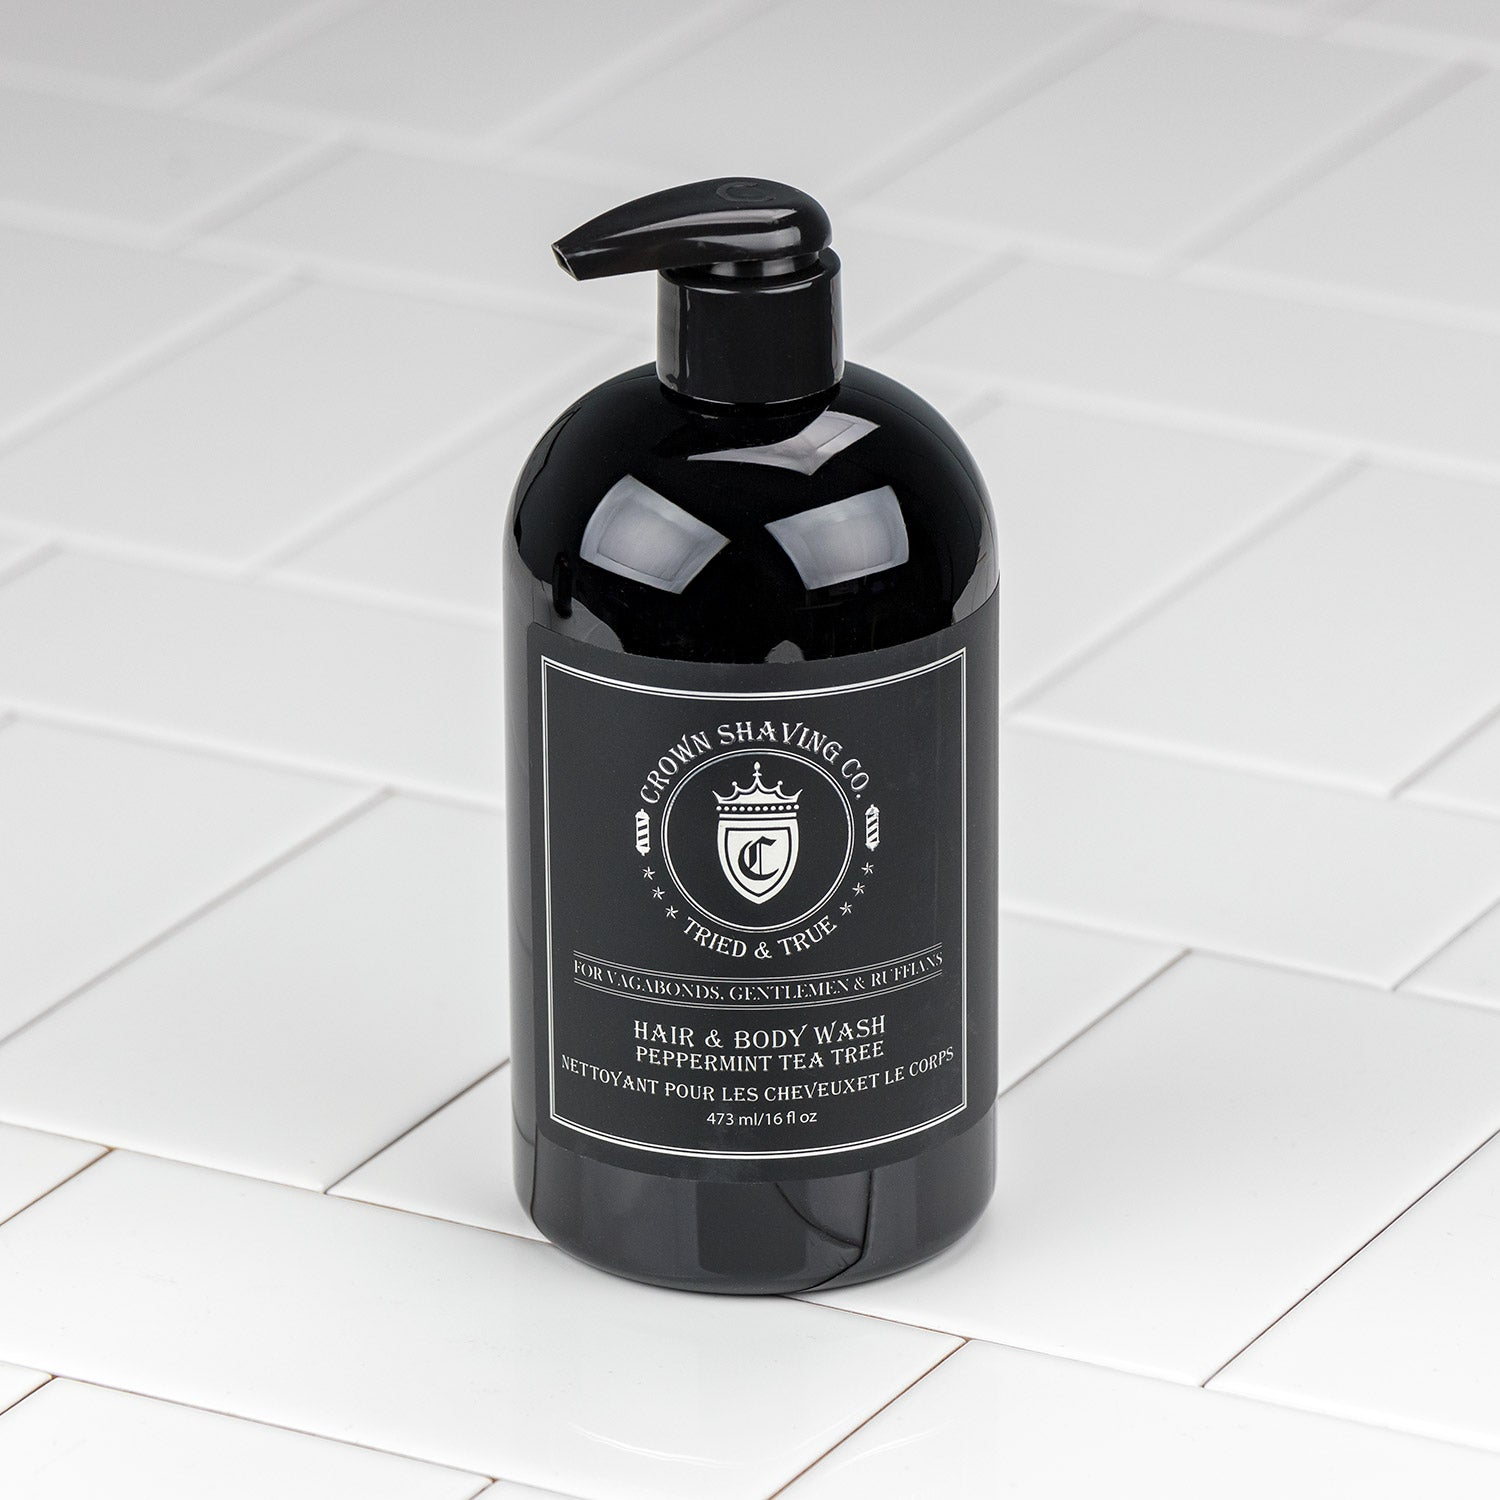 Crown Shaving Co. Hair and Body Wash - Peppermint & Tea Tree Oil